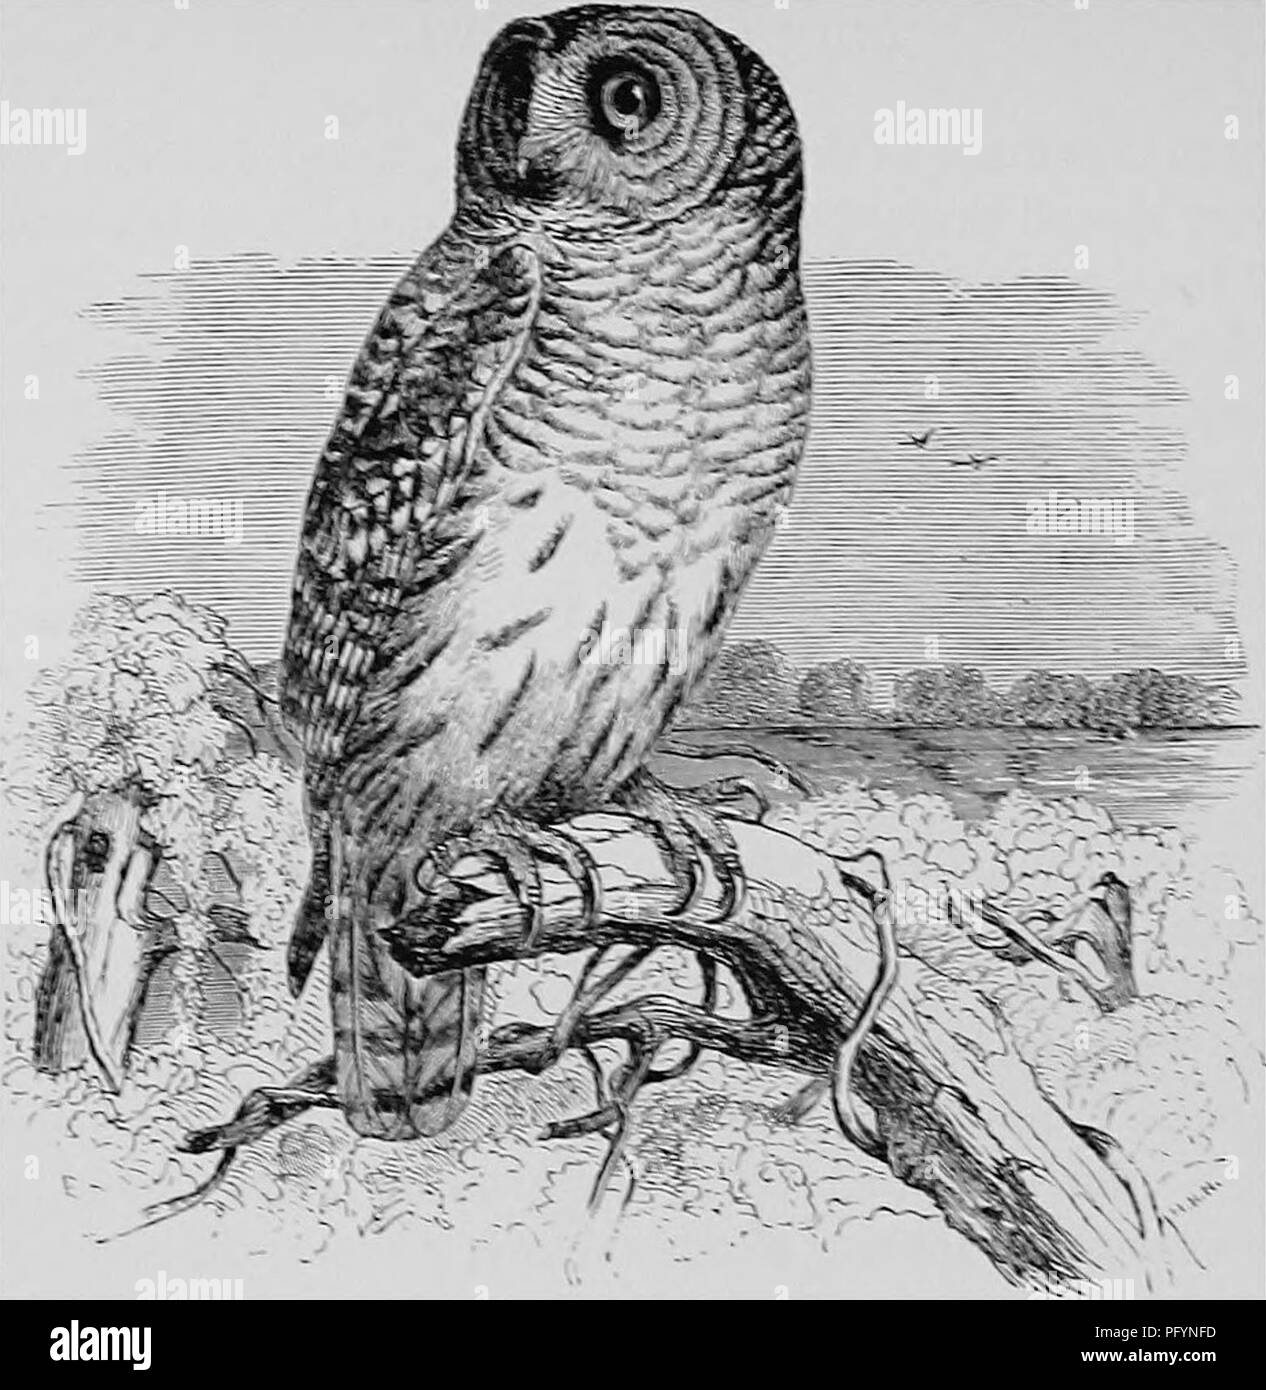 . A popular handbook of the ornithology of the United States and Canada, based on Nuttall's Manual. Birds; Birds. BARRED OWL. HOOT OWL. SVRXEOI XEBLXOSUM. Char. Above, brown barred, spotted, and striped with dull gray or tawny ; below, similar colors of paler tints; face, gray stripes; tail barred ; iris brownish black ; bill yellow. Length 19J4 to 24 inches. Easily distinguished from all other species by its dark eyes. ^Vesi. Usually in a hollow tree, but often a deserted nest of Crow or Hawk is re-lined and used. Bggs. 2-4; white and nearly spherical; 1.95 X 1.65. This species inhabits the n Stock Photo